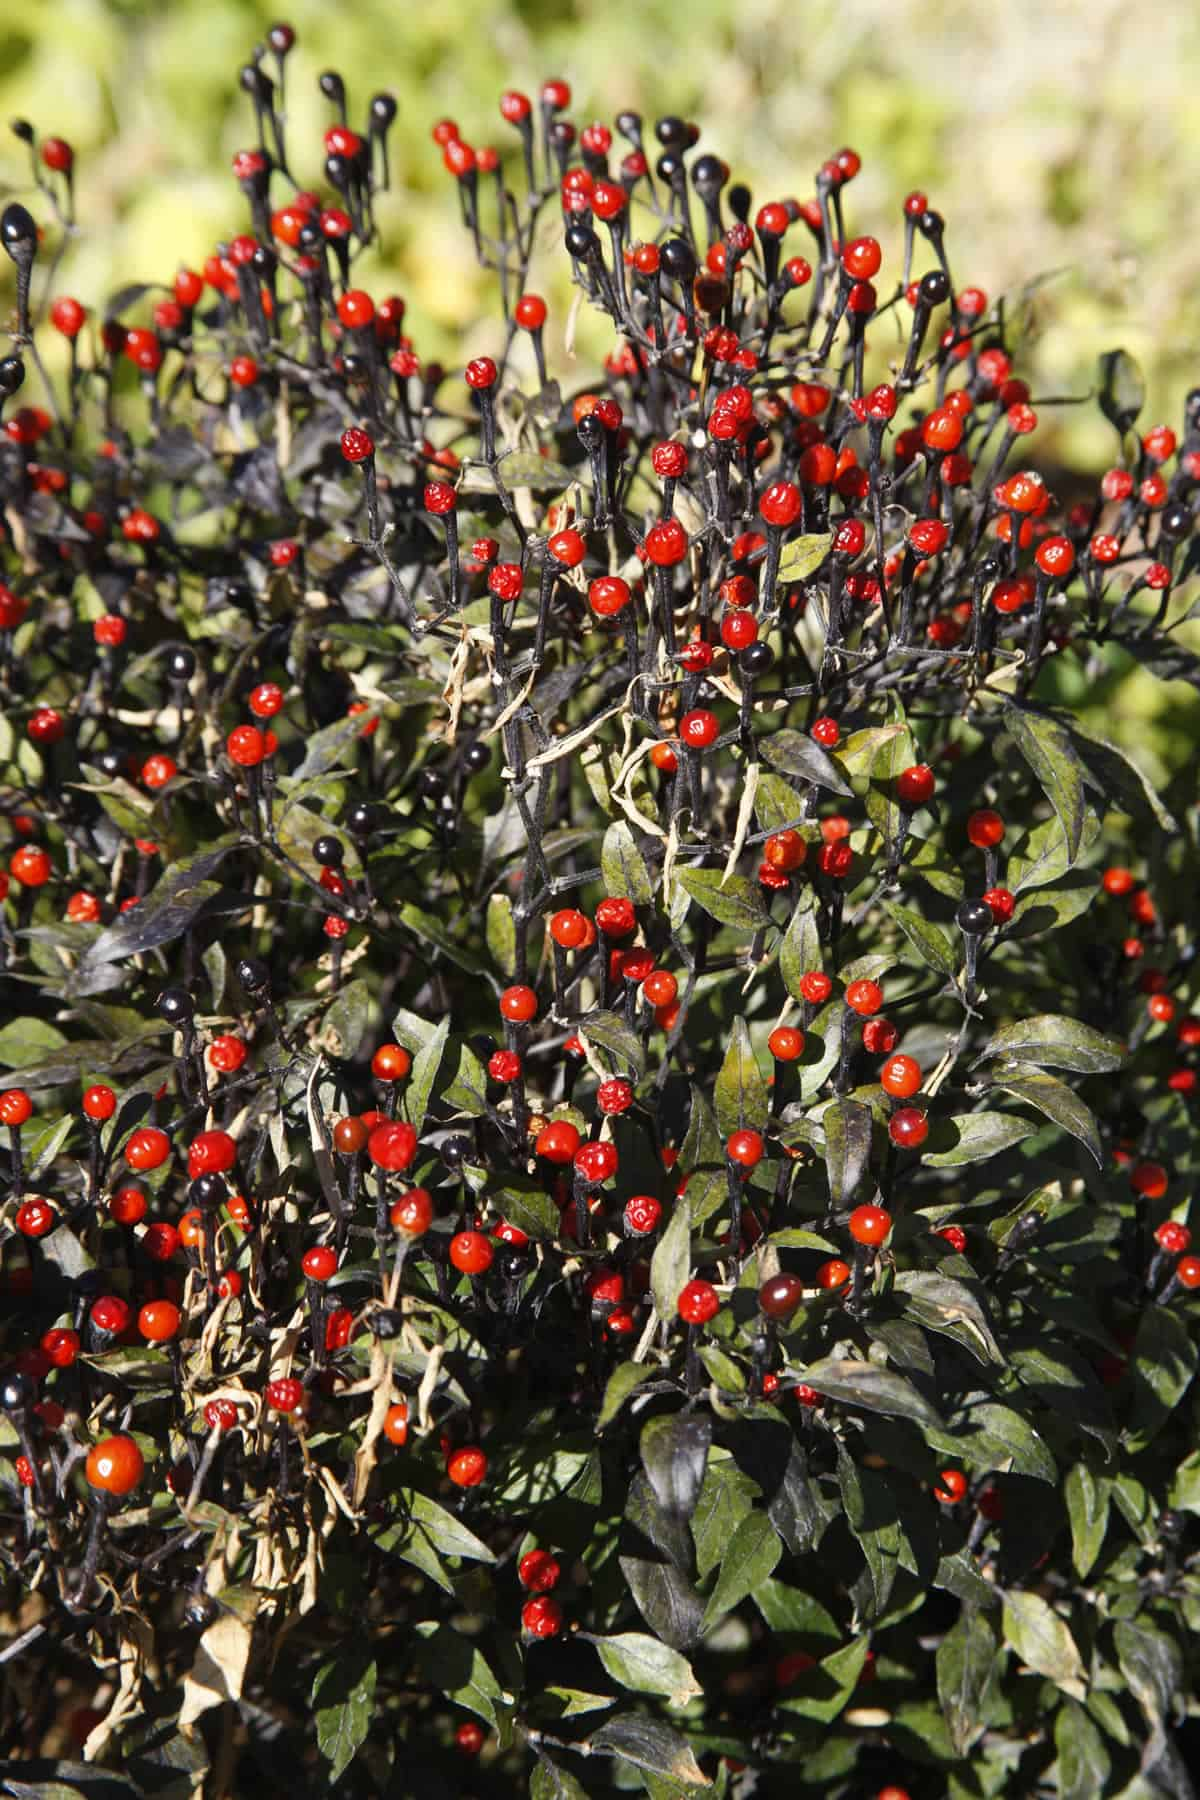 Chiltepin Peppers Wild Tiny U S Native Hot Peppers Chili Pepper Madness